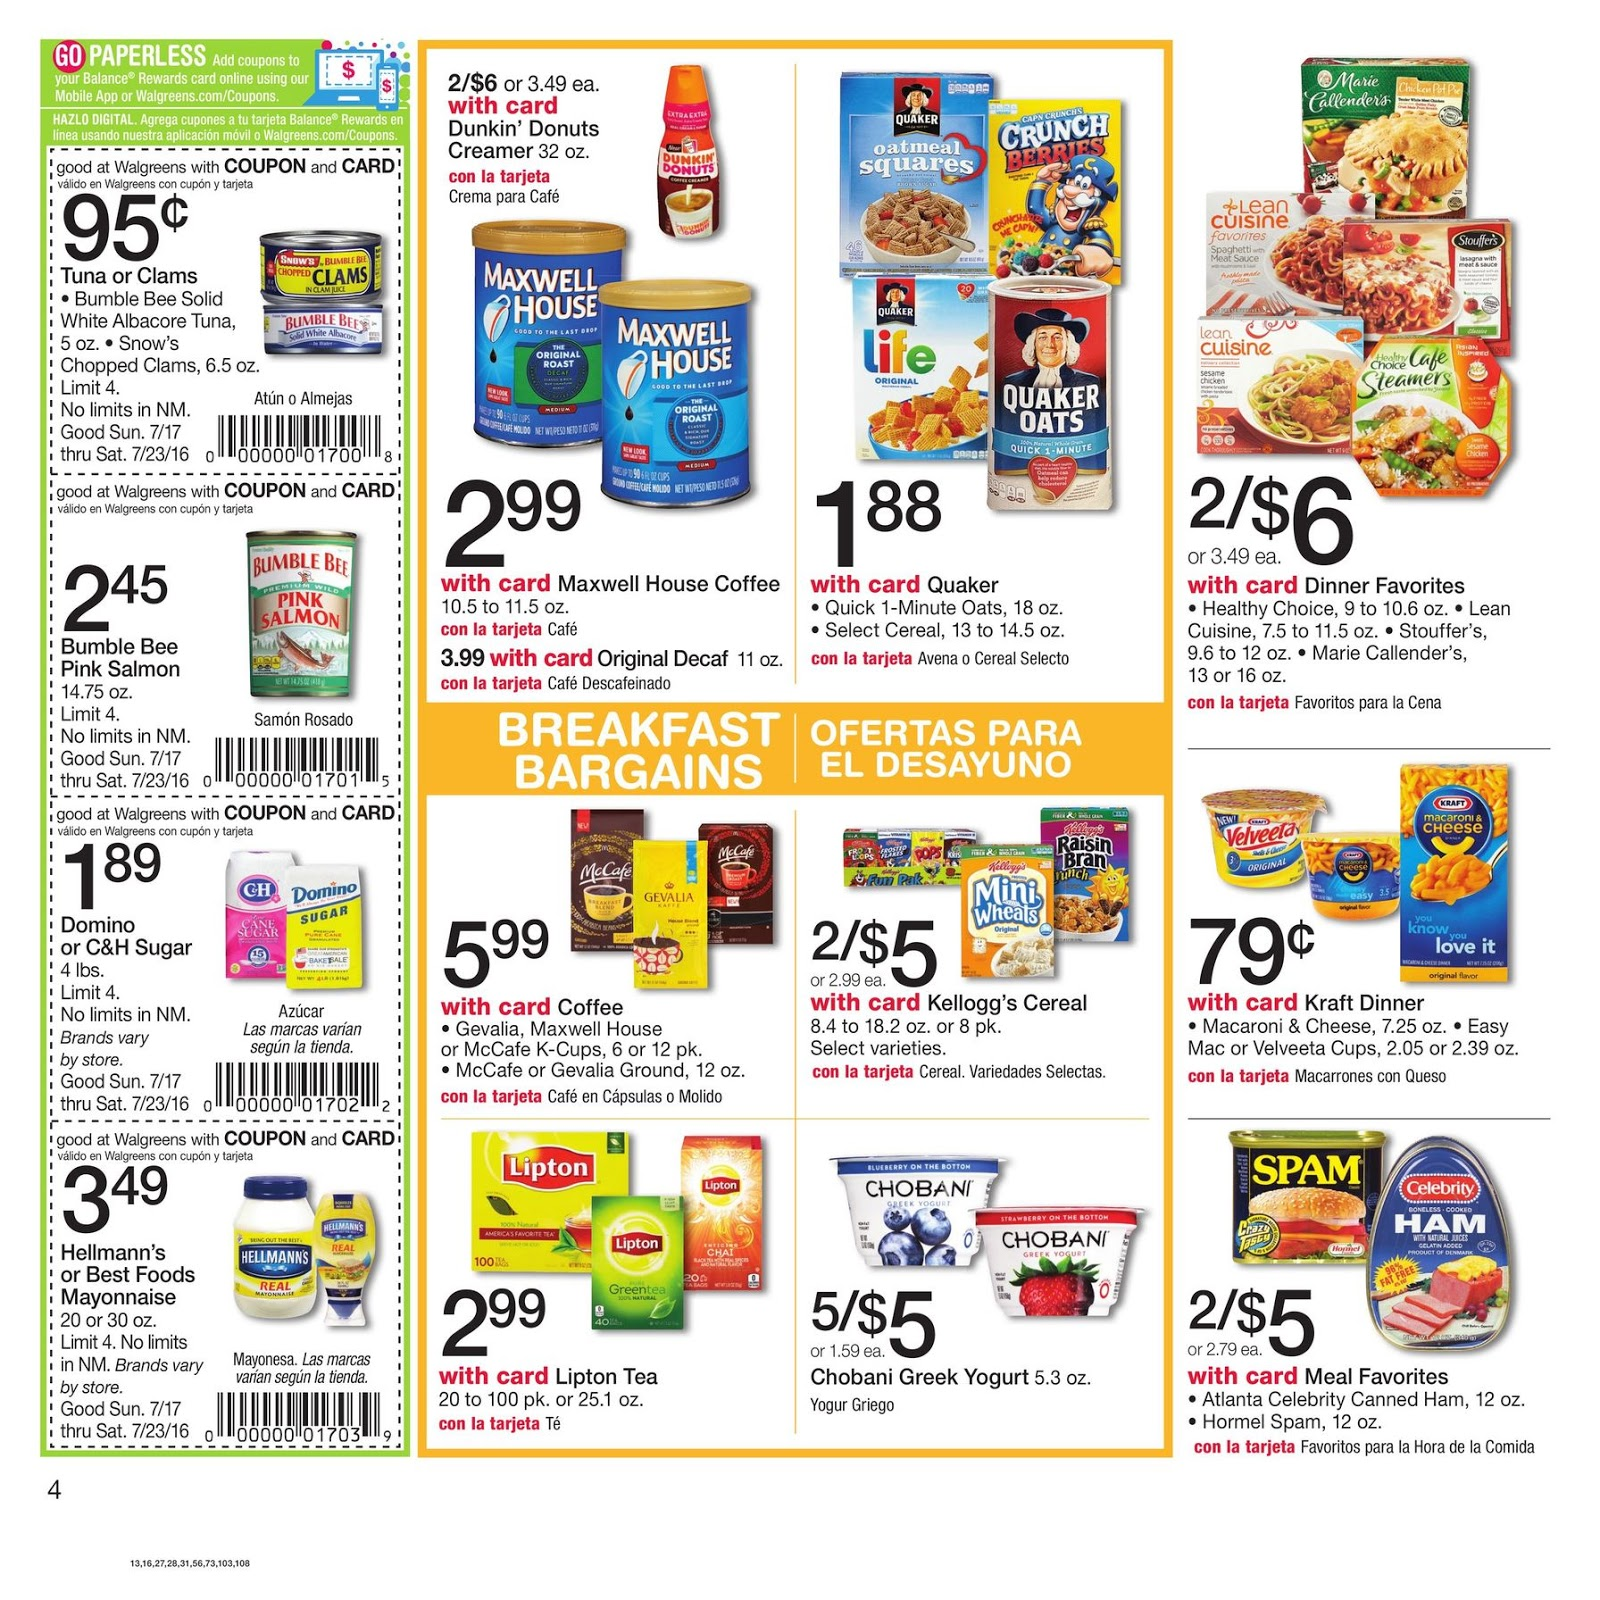 You can also see all official Walgreens Photo Coupons for savings of up to 50% off or more. New codes are available every week as well. Those looking to use Walgreens photo service should check back on this page since they offer tons of new photo card and gifts coupon codes as well as codes for contact lenses prescription and other health services.